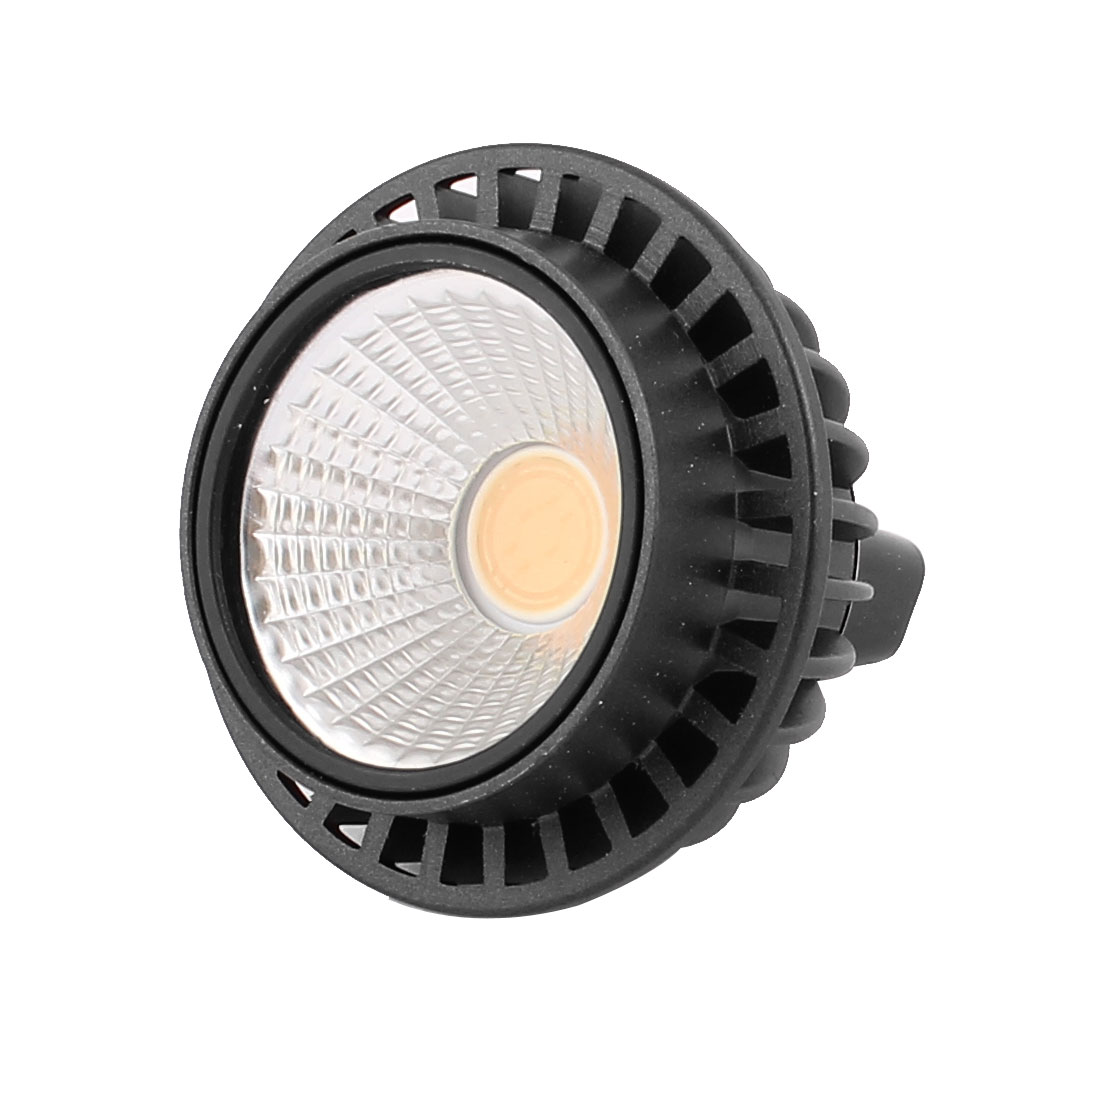 DC12V 3W MR16 COB LED Spotlight Lamp Bulb Round Downlight Warm White